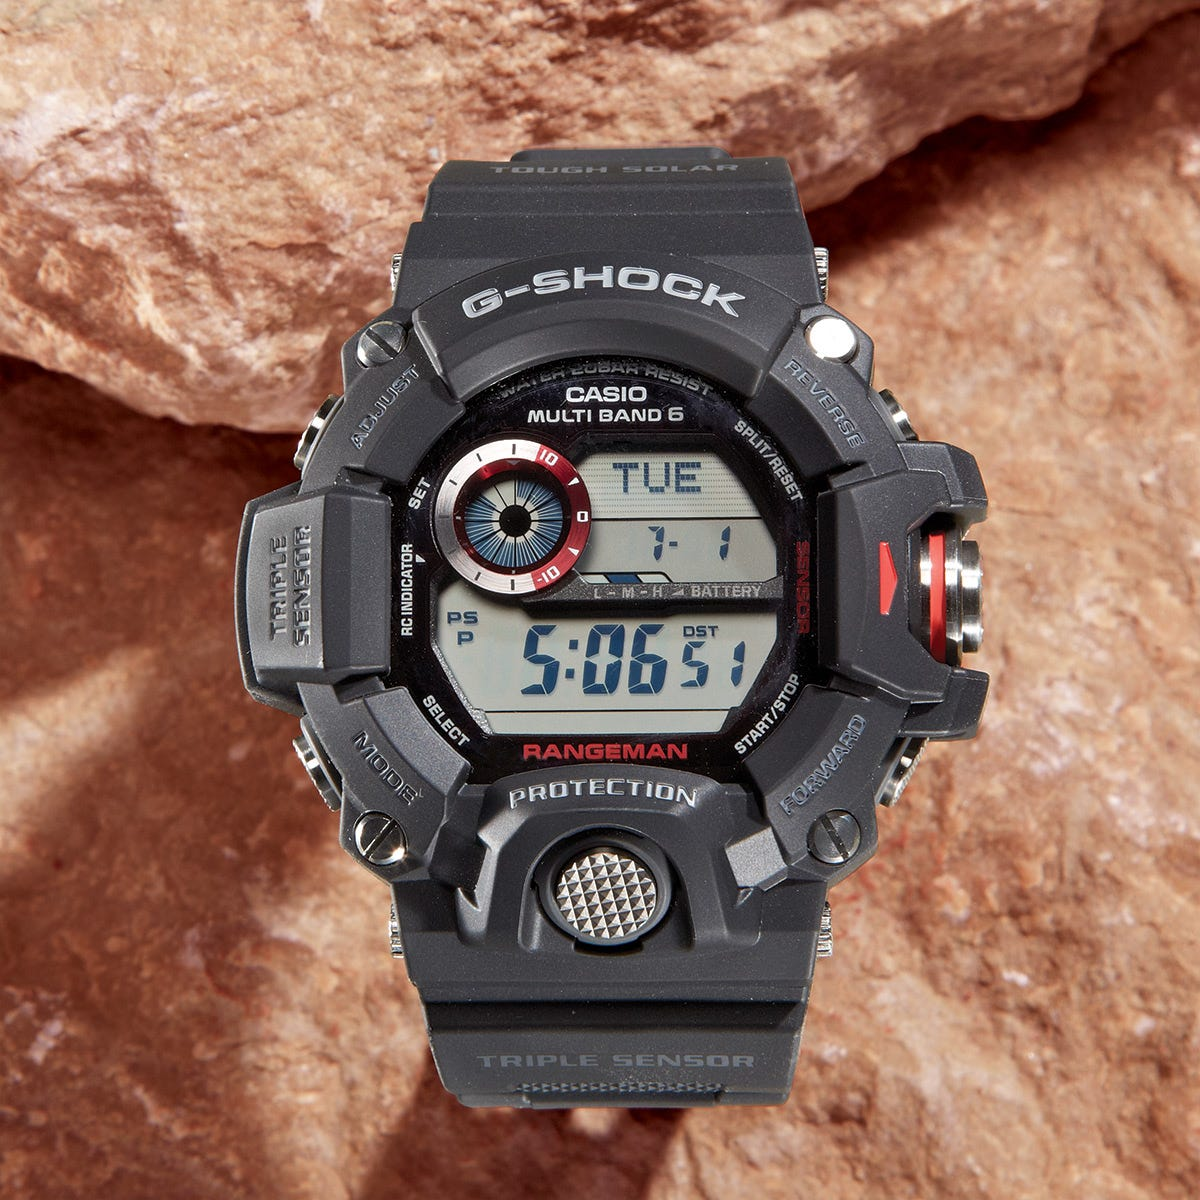 79626053c2470 G-Shock Altimeter Watch - from Sporty s Pilot Shop